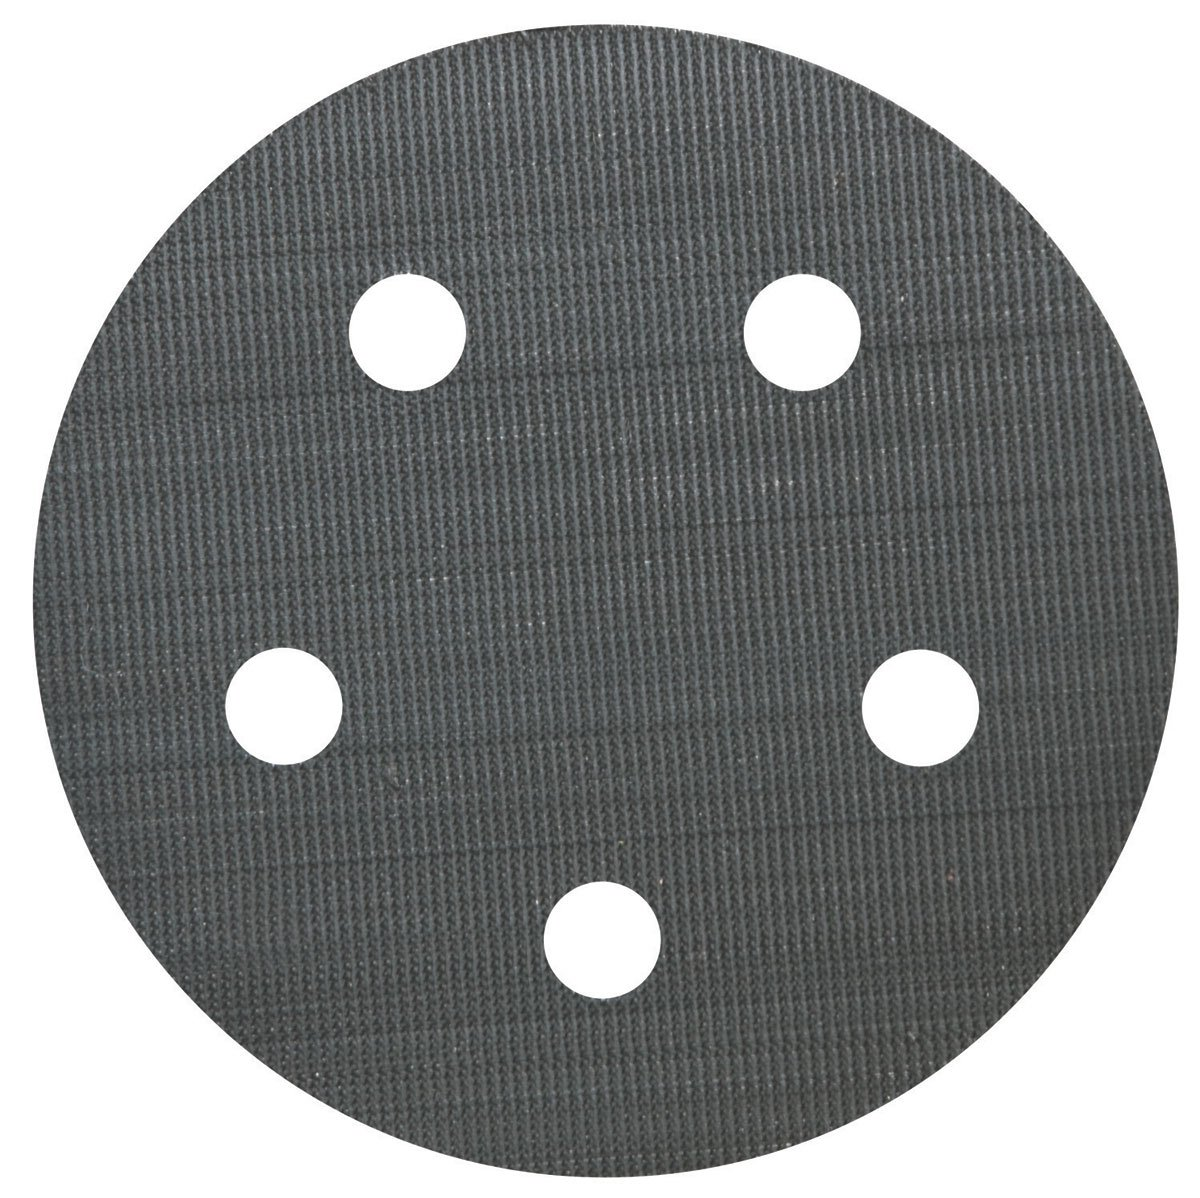 PORTER-CABLE 13905 5-Inch Contour Hook and Loop Replacement Pad (for 333 Random Orbit Sander)